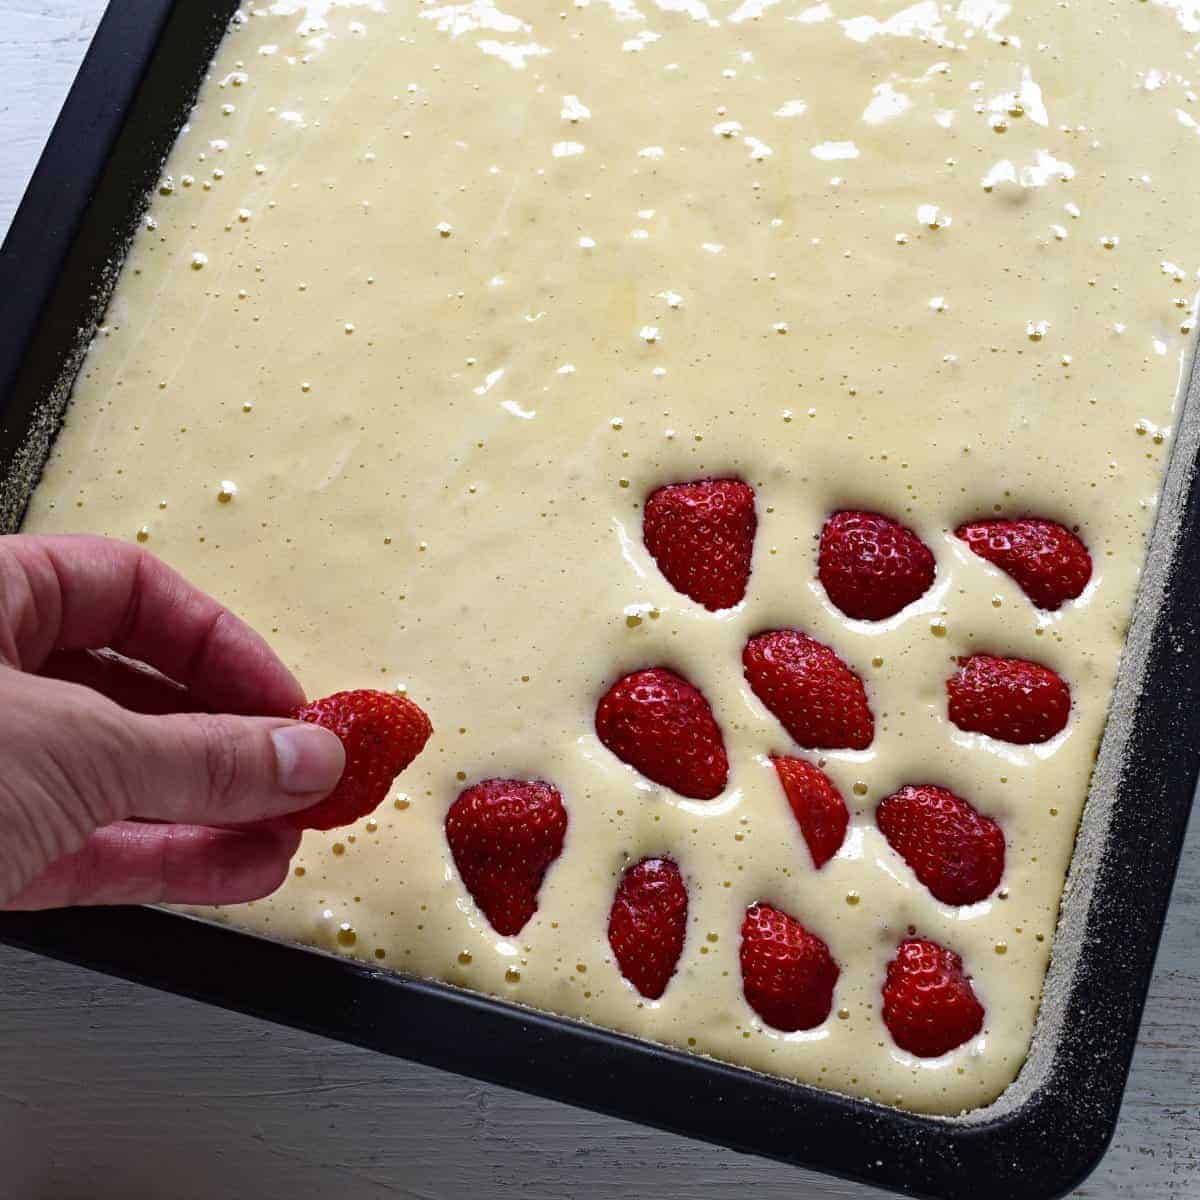 putting strawberries on a batter